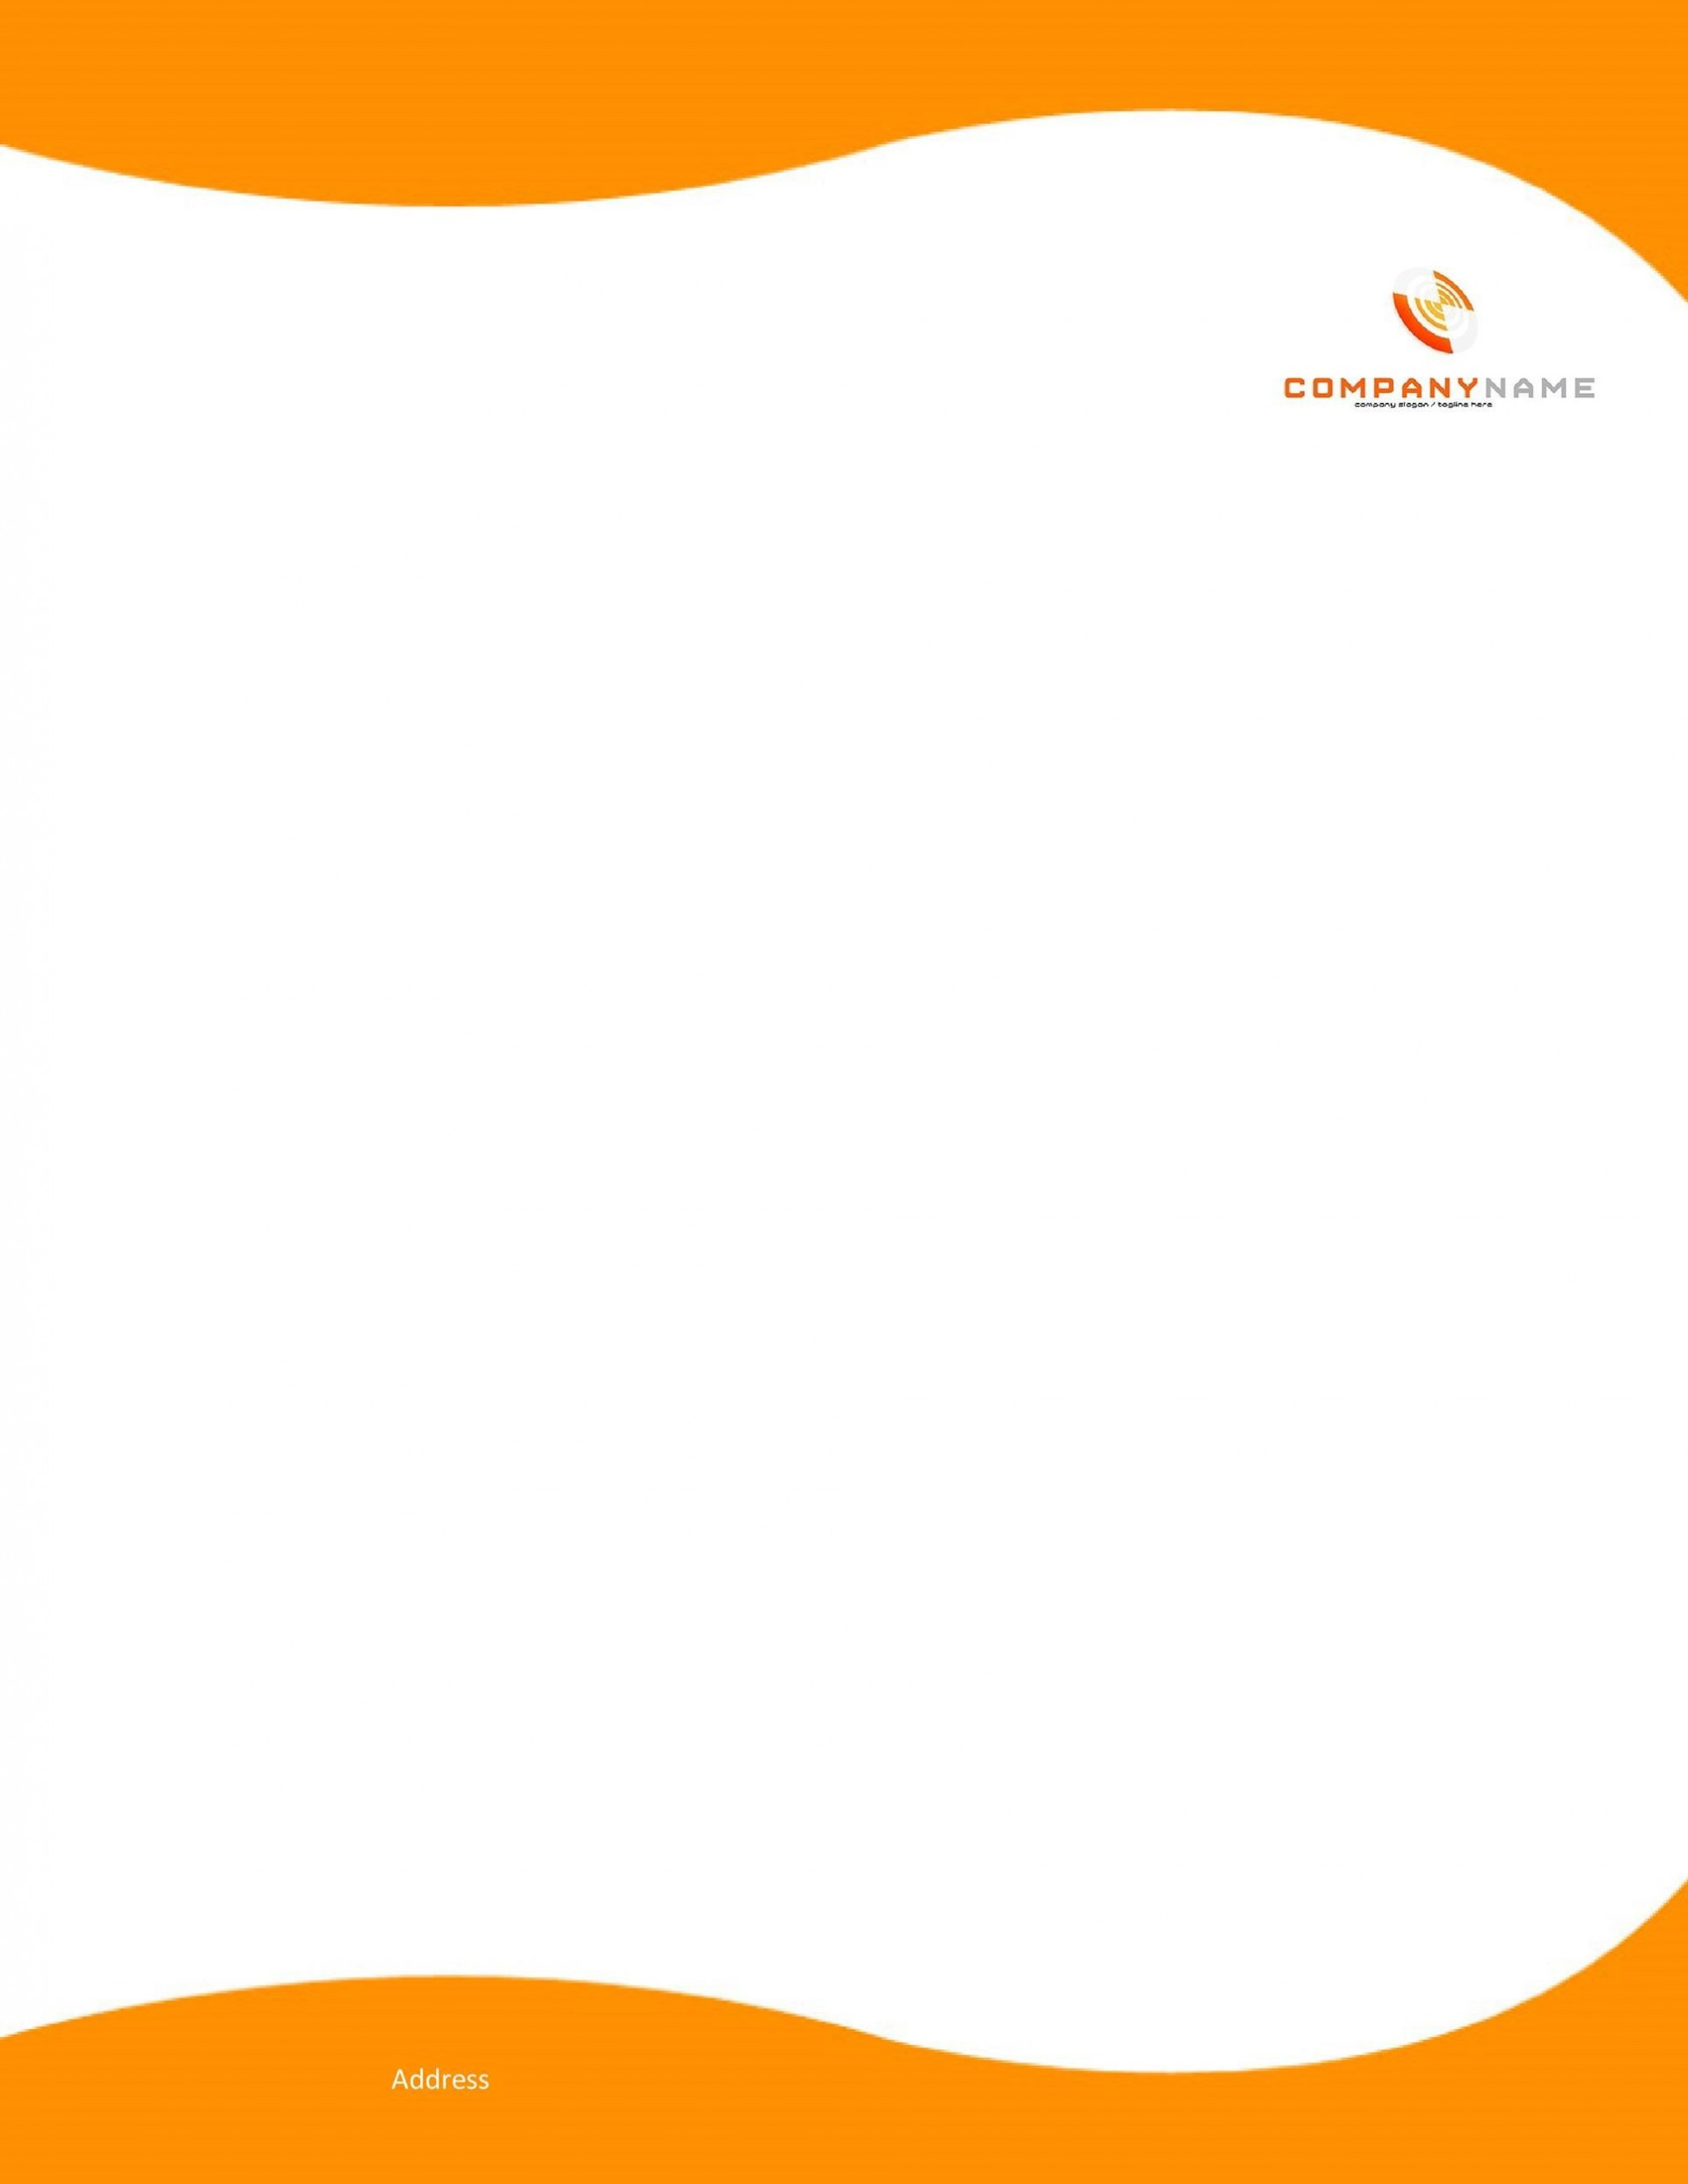 007 Unusual Letterhead Sample In Word Format Free Download Highest Quality  Design Template Psd1920